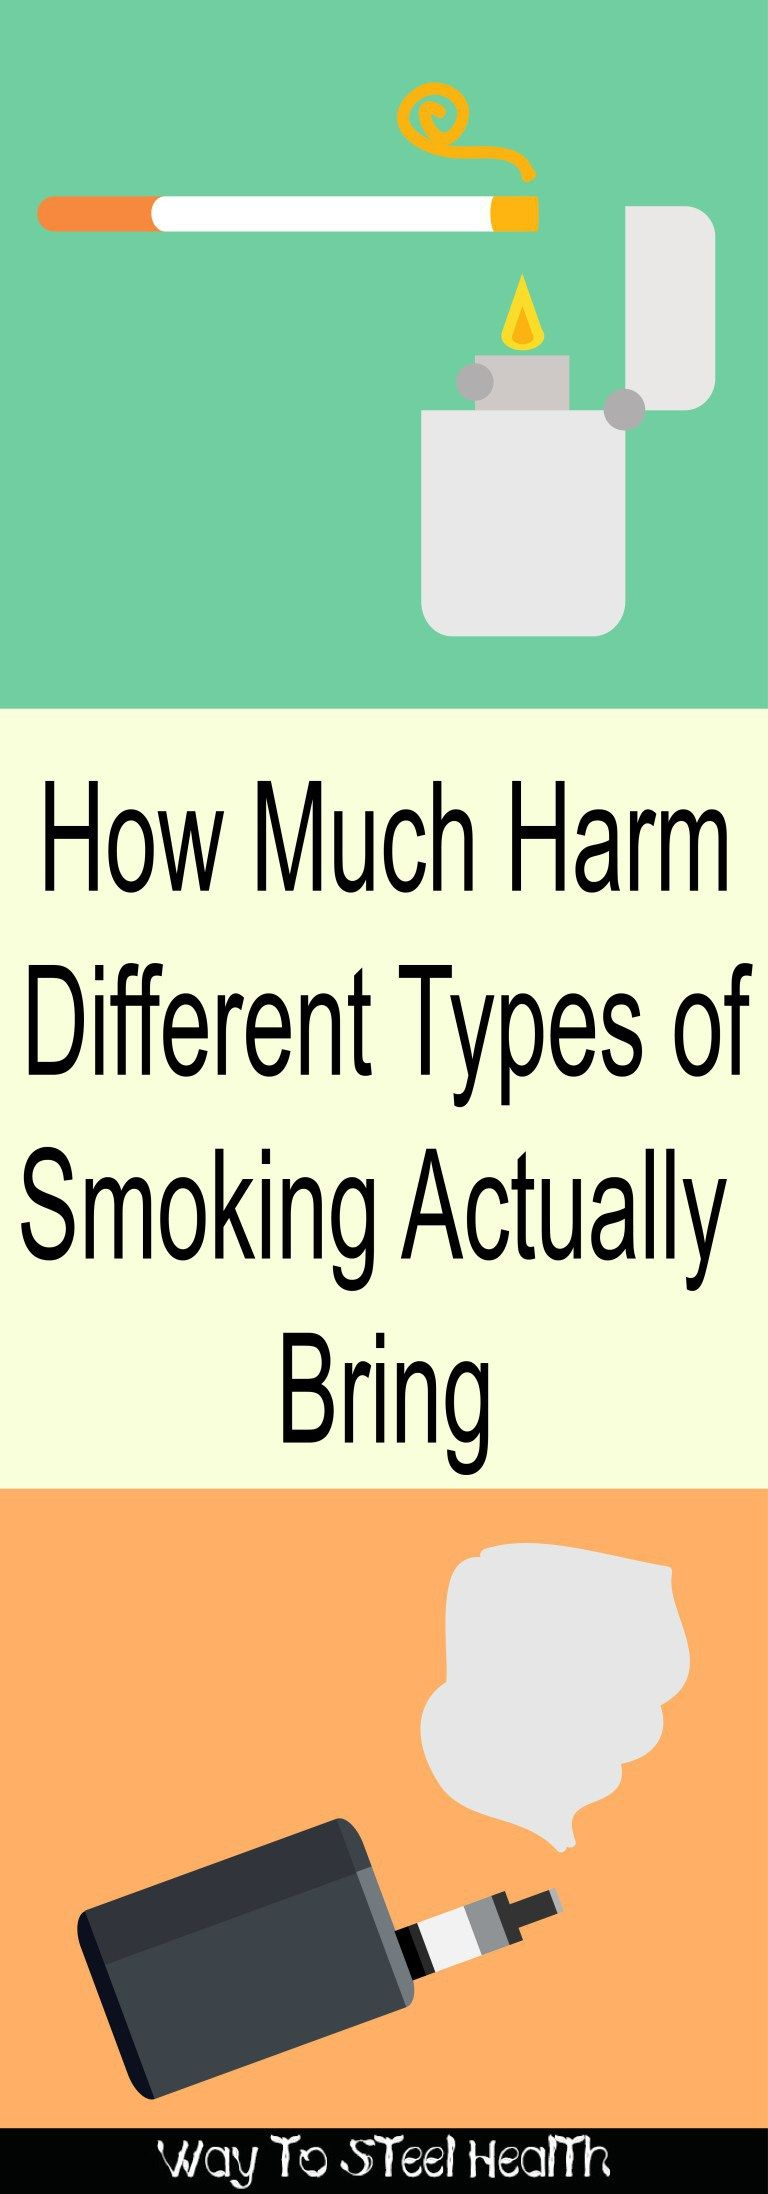 Scientists Have Concluded How Much Harm Different Types ofSmoking Actually Bring